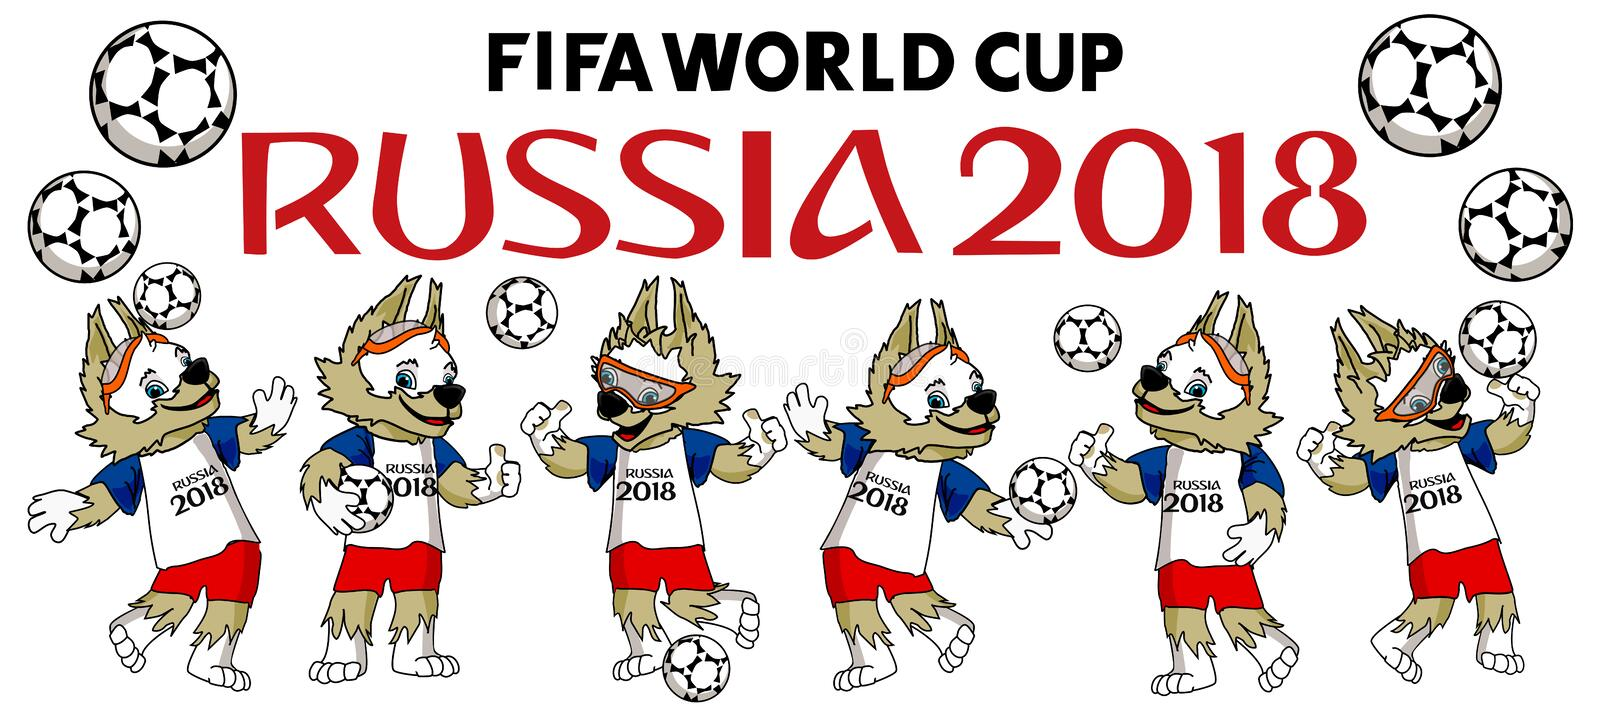 Fifa-världscupmaskot 2018 royaltyfri illustrationer